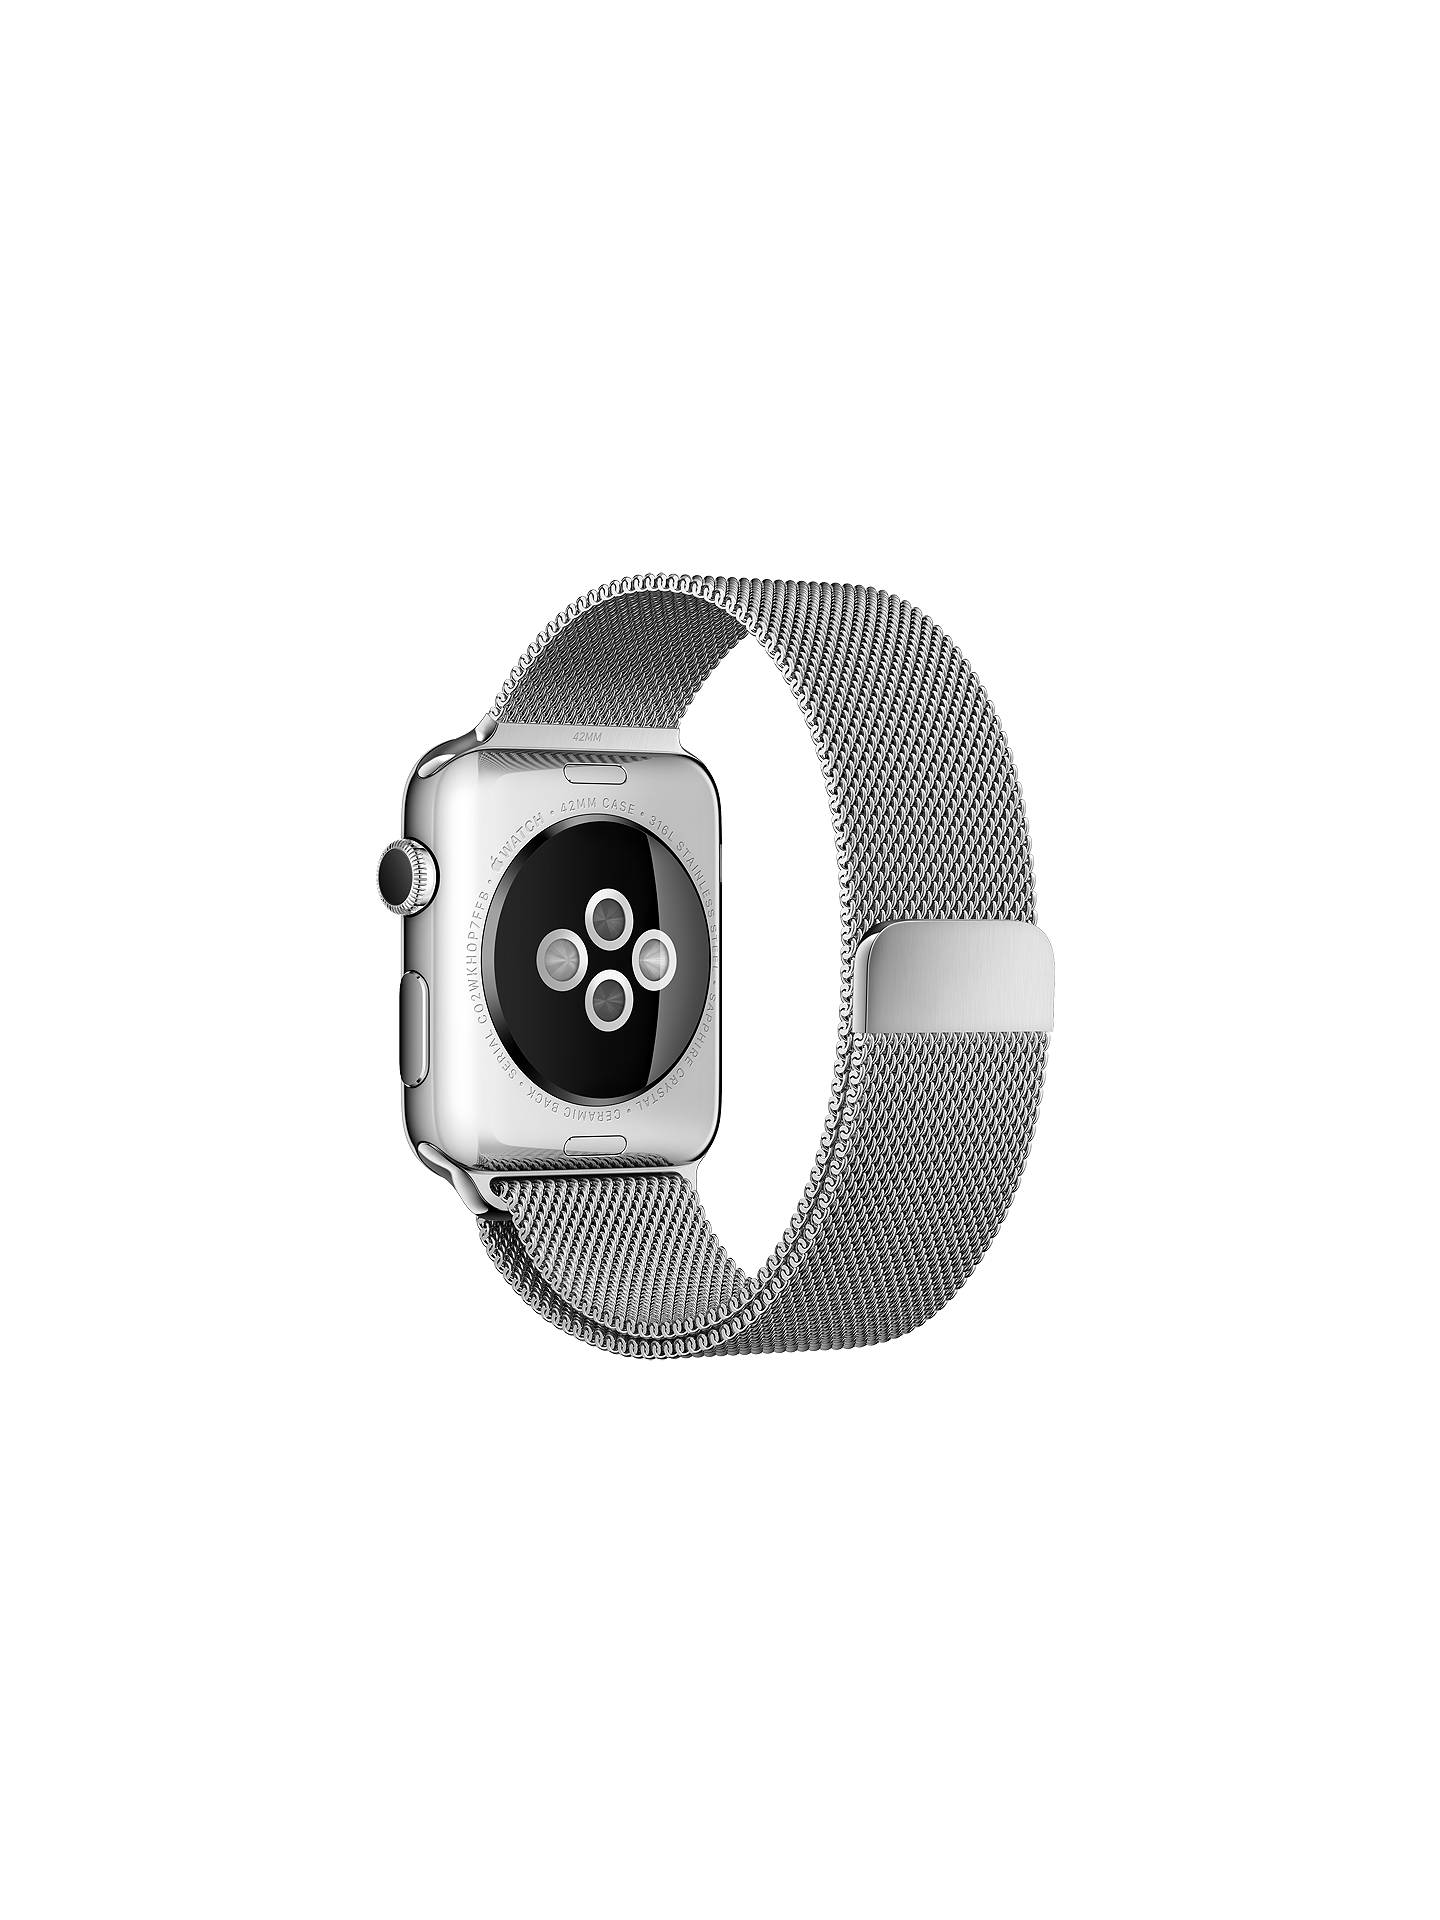 da968b128f9 ... Buy Apple Watch with 42mm Stainless Steel Case & Milanese Loop Online  at johnlewis. ...